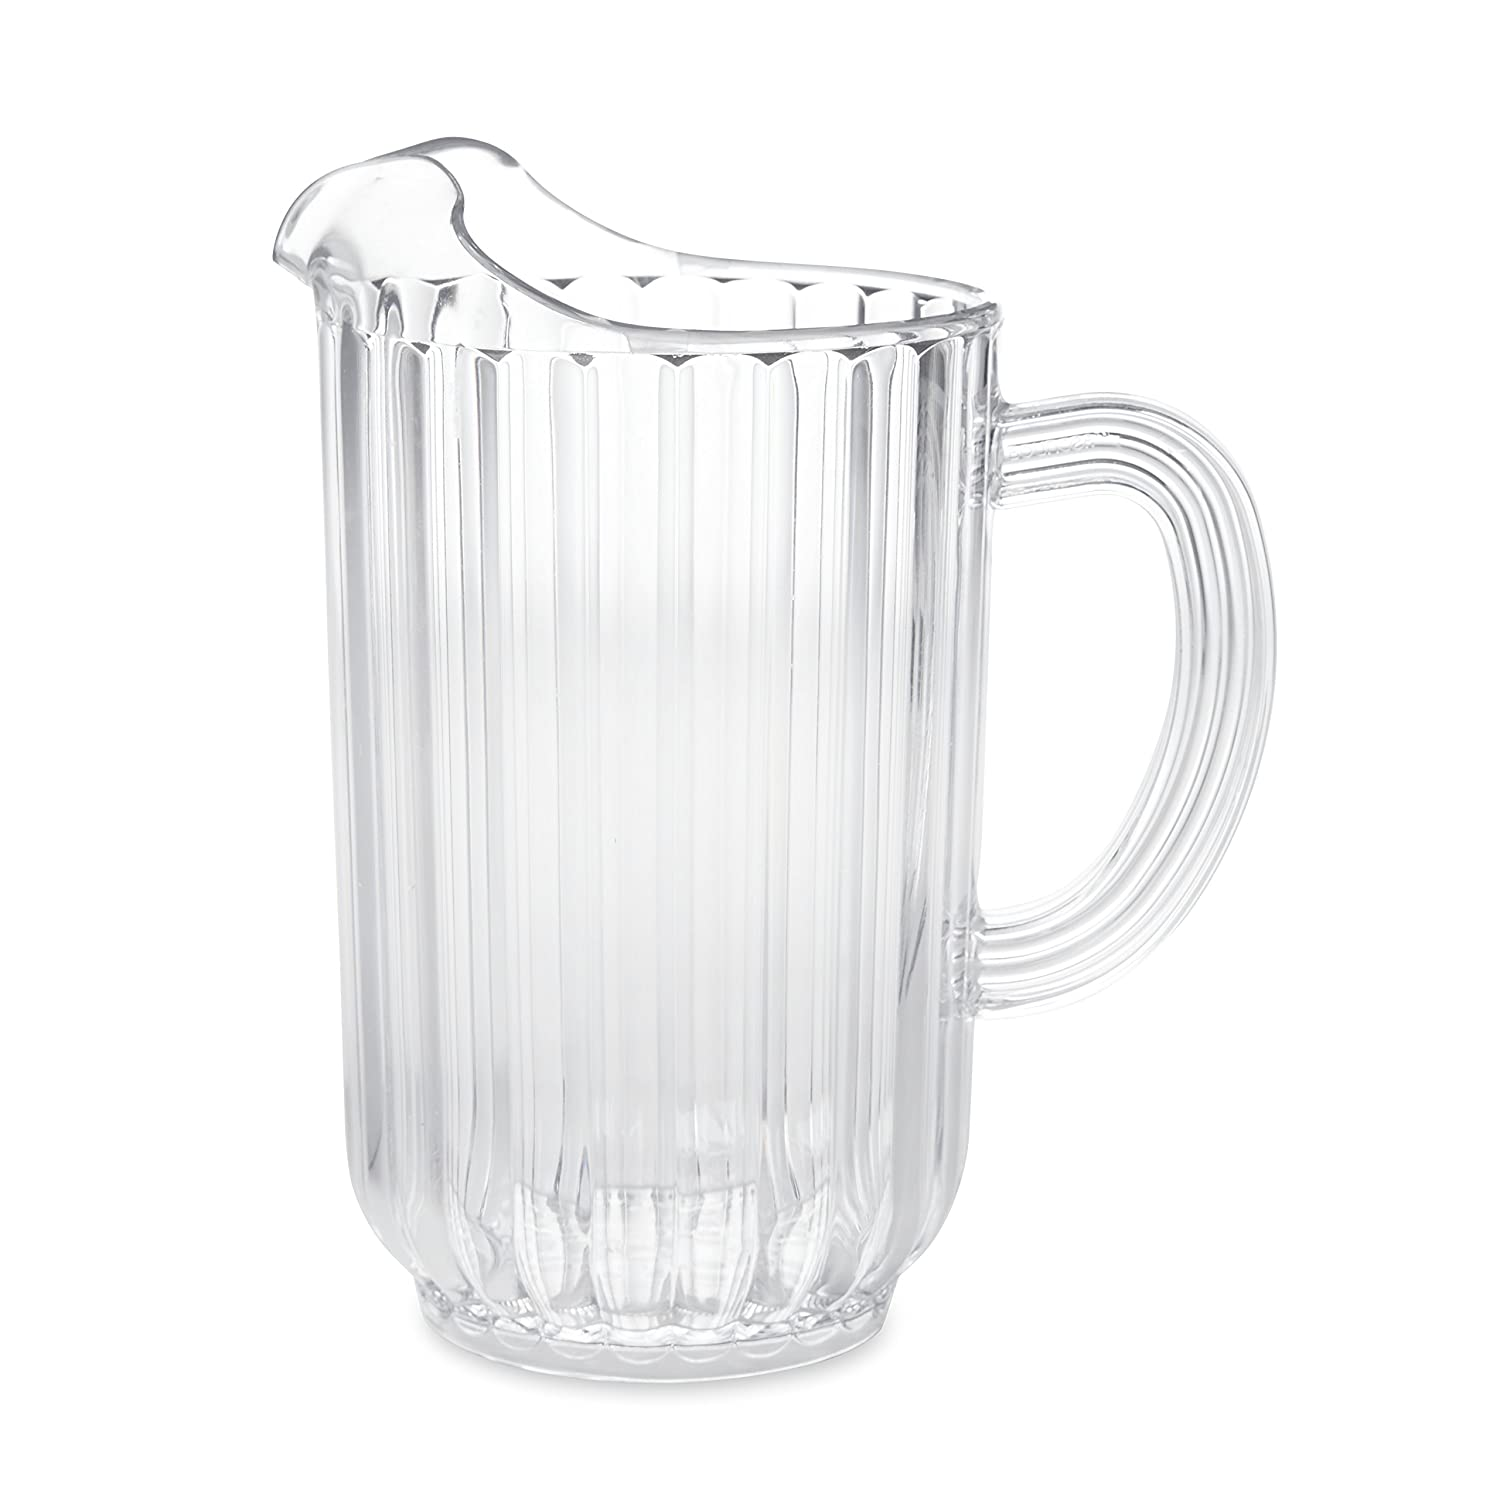 Rubbermaid Commercial 3339CLE Bouncer Plastic Pitcher, 72 oz, Clear FG333900CLR